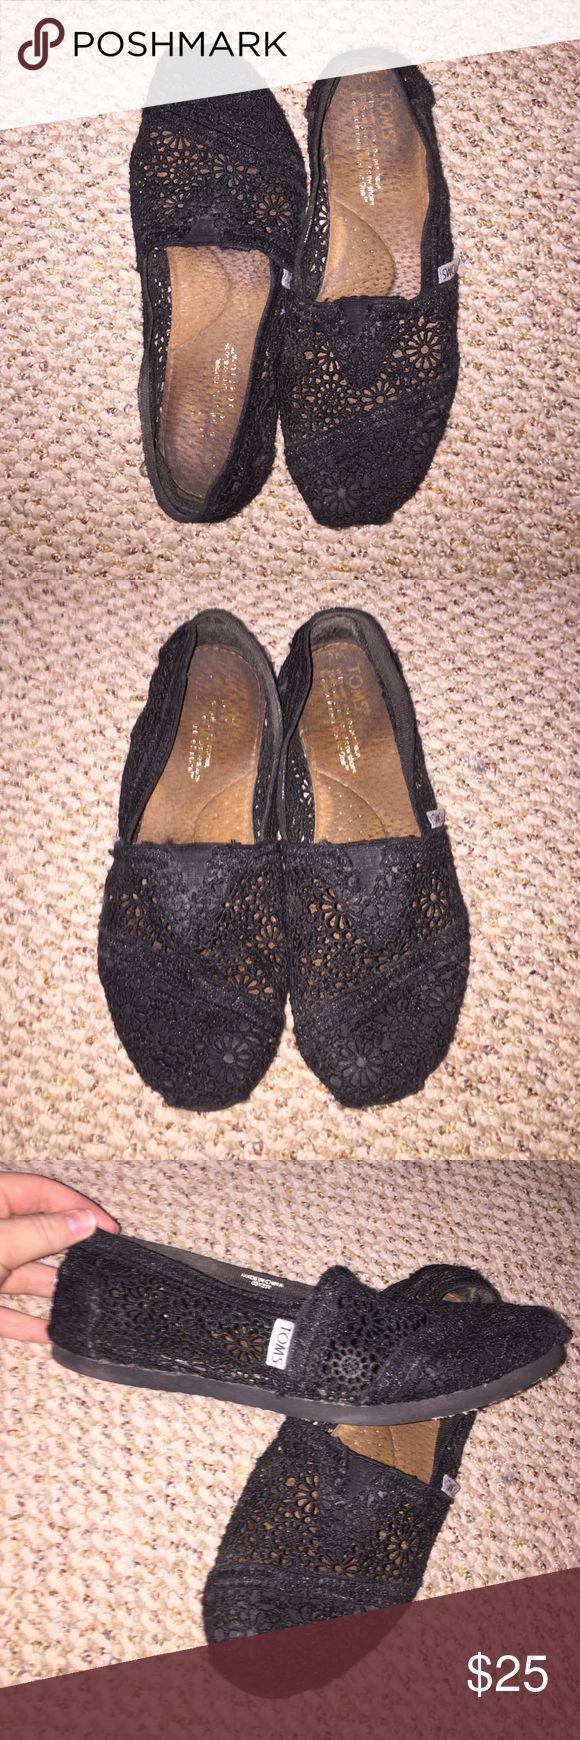 Authentic black crochet TOMS Shoes Worn but still in good condition. Crochet still in great condition. Insole and outsole a little worn out. Asking for 25$ or best offer!!! TOMS Shoes Flats & Loafers